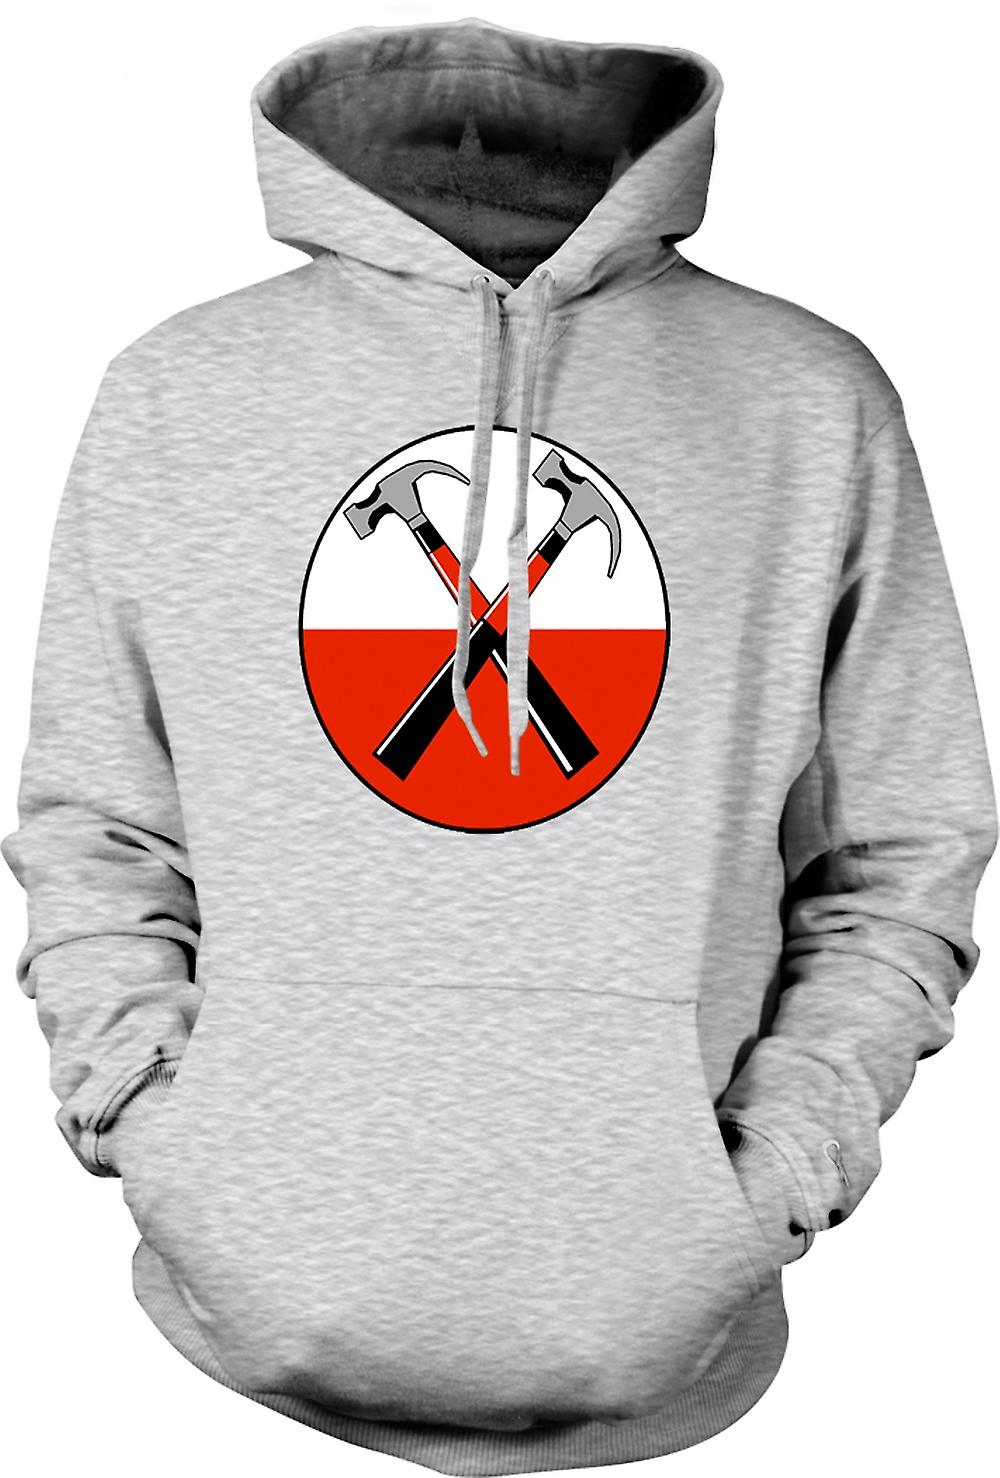 Herren Hoodie - Pink Floyd - The Wall Twin Hammer